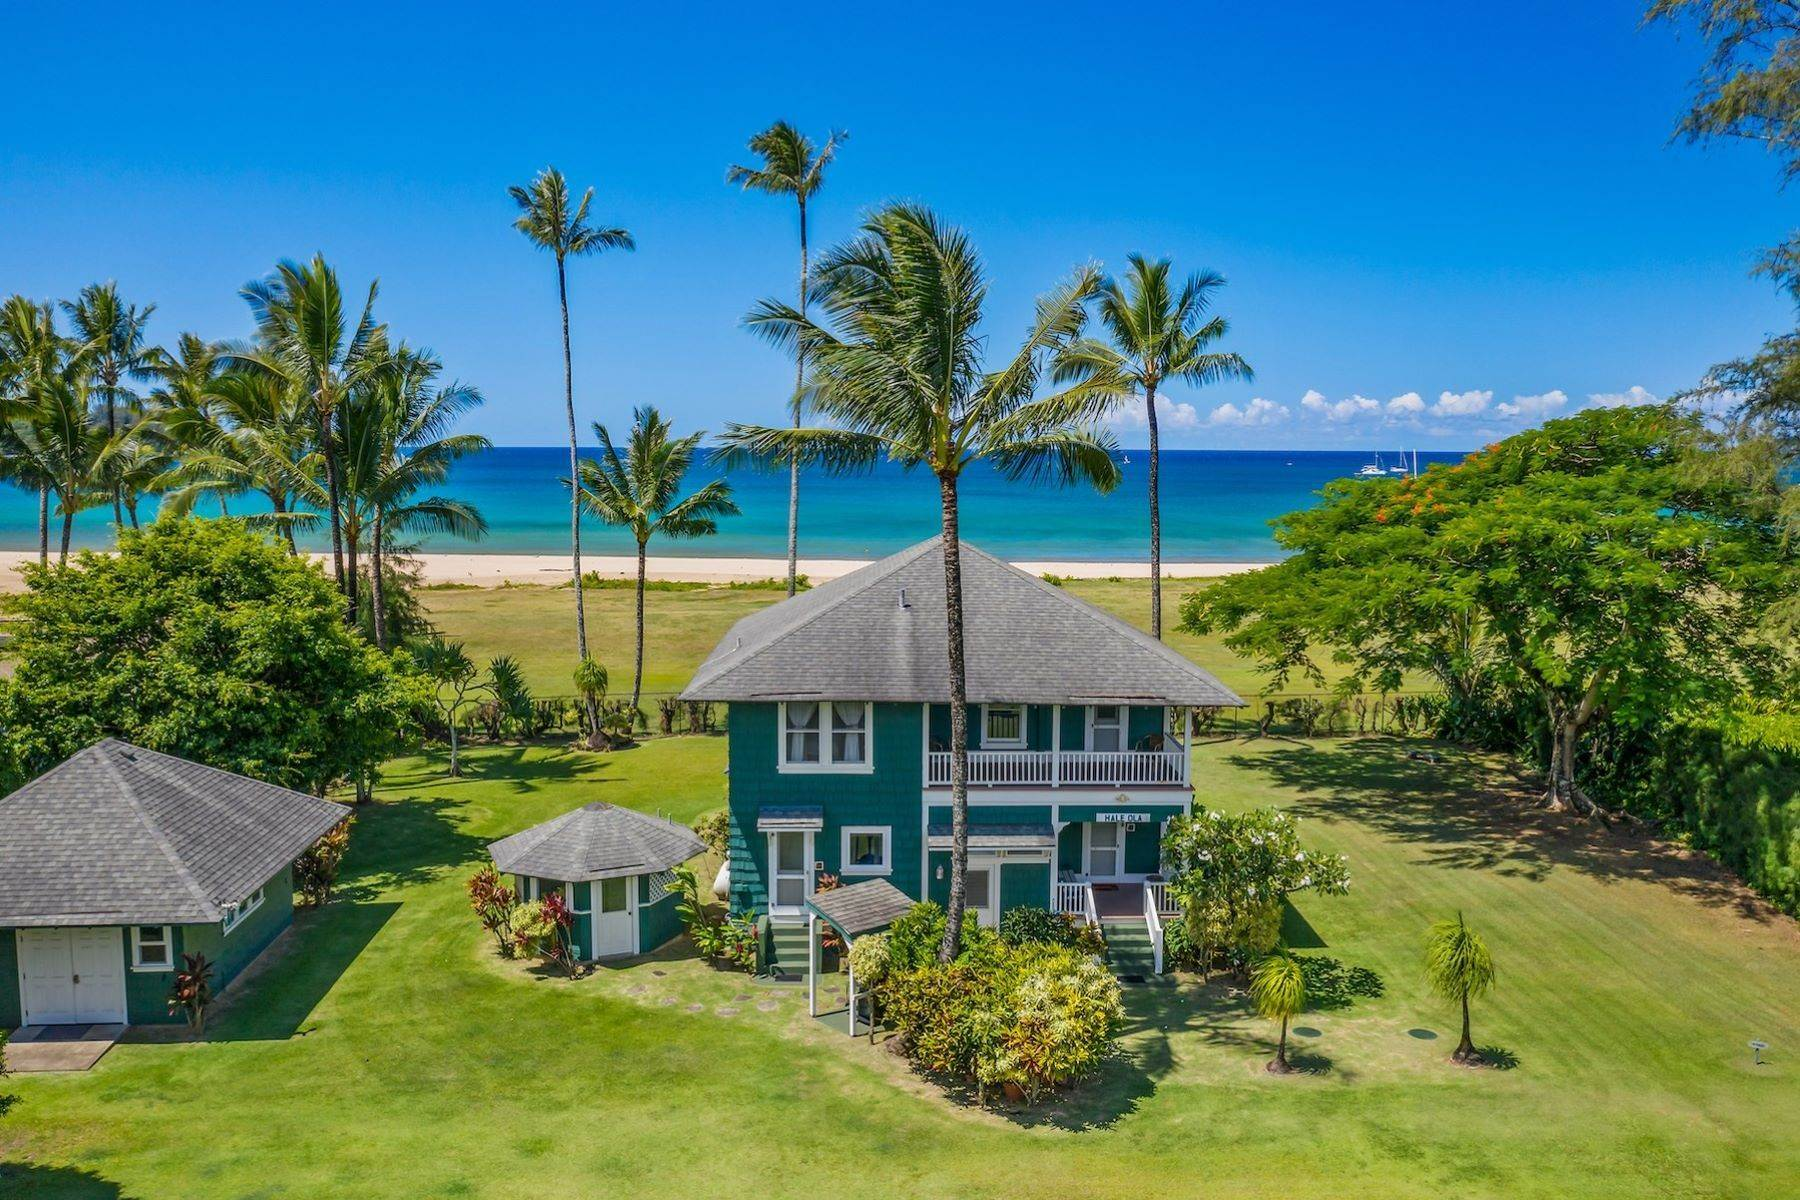 Single Family Homes per Vendita alle ore 5372 WEKE RD #2 HANALEI, HI 96714 Hanalei, Hanalei, Hawaii, 96714 Stati Uniti